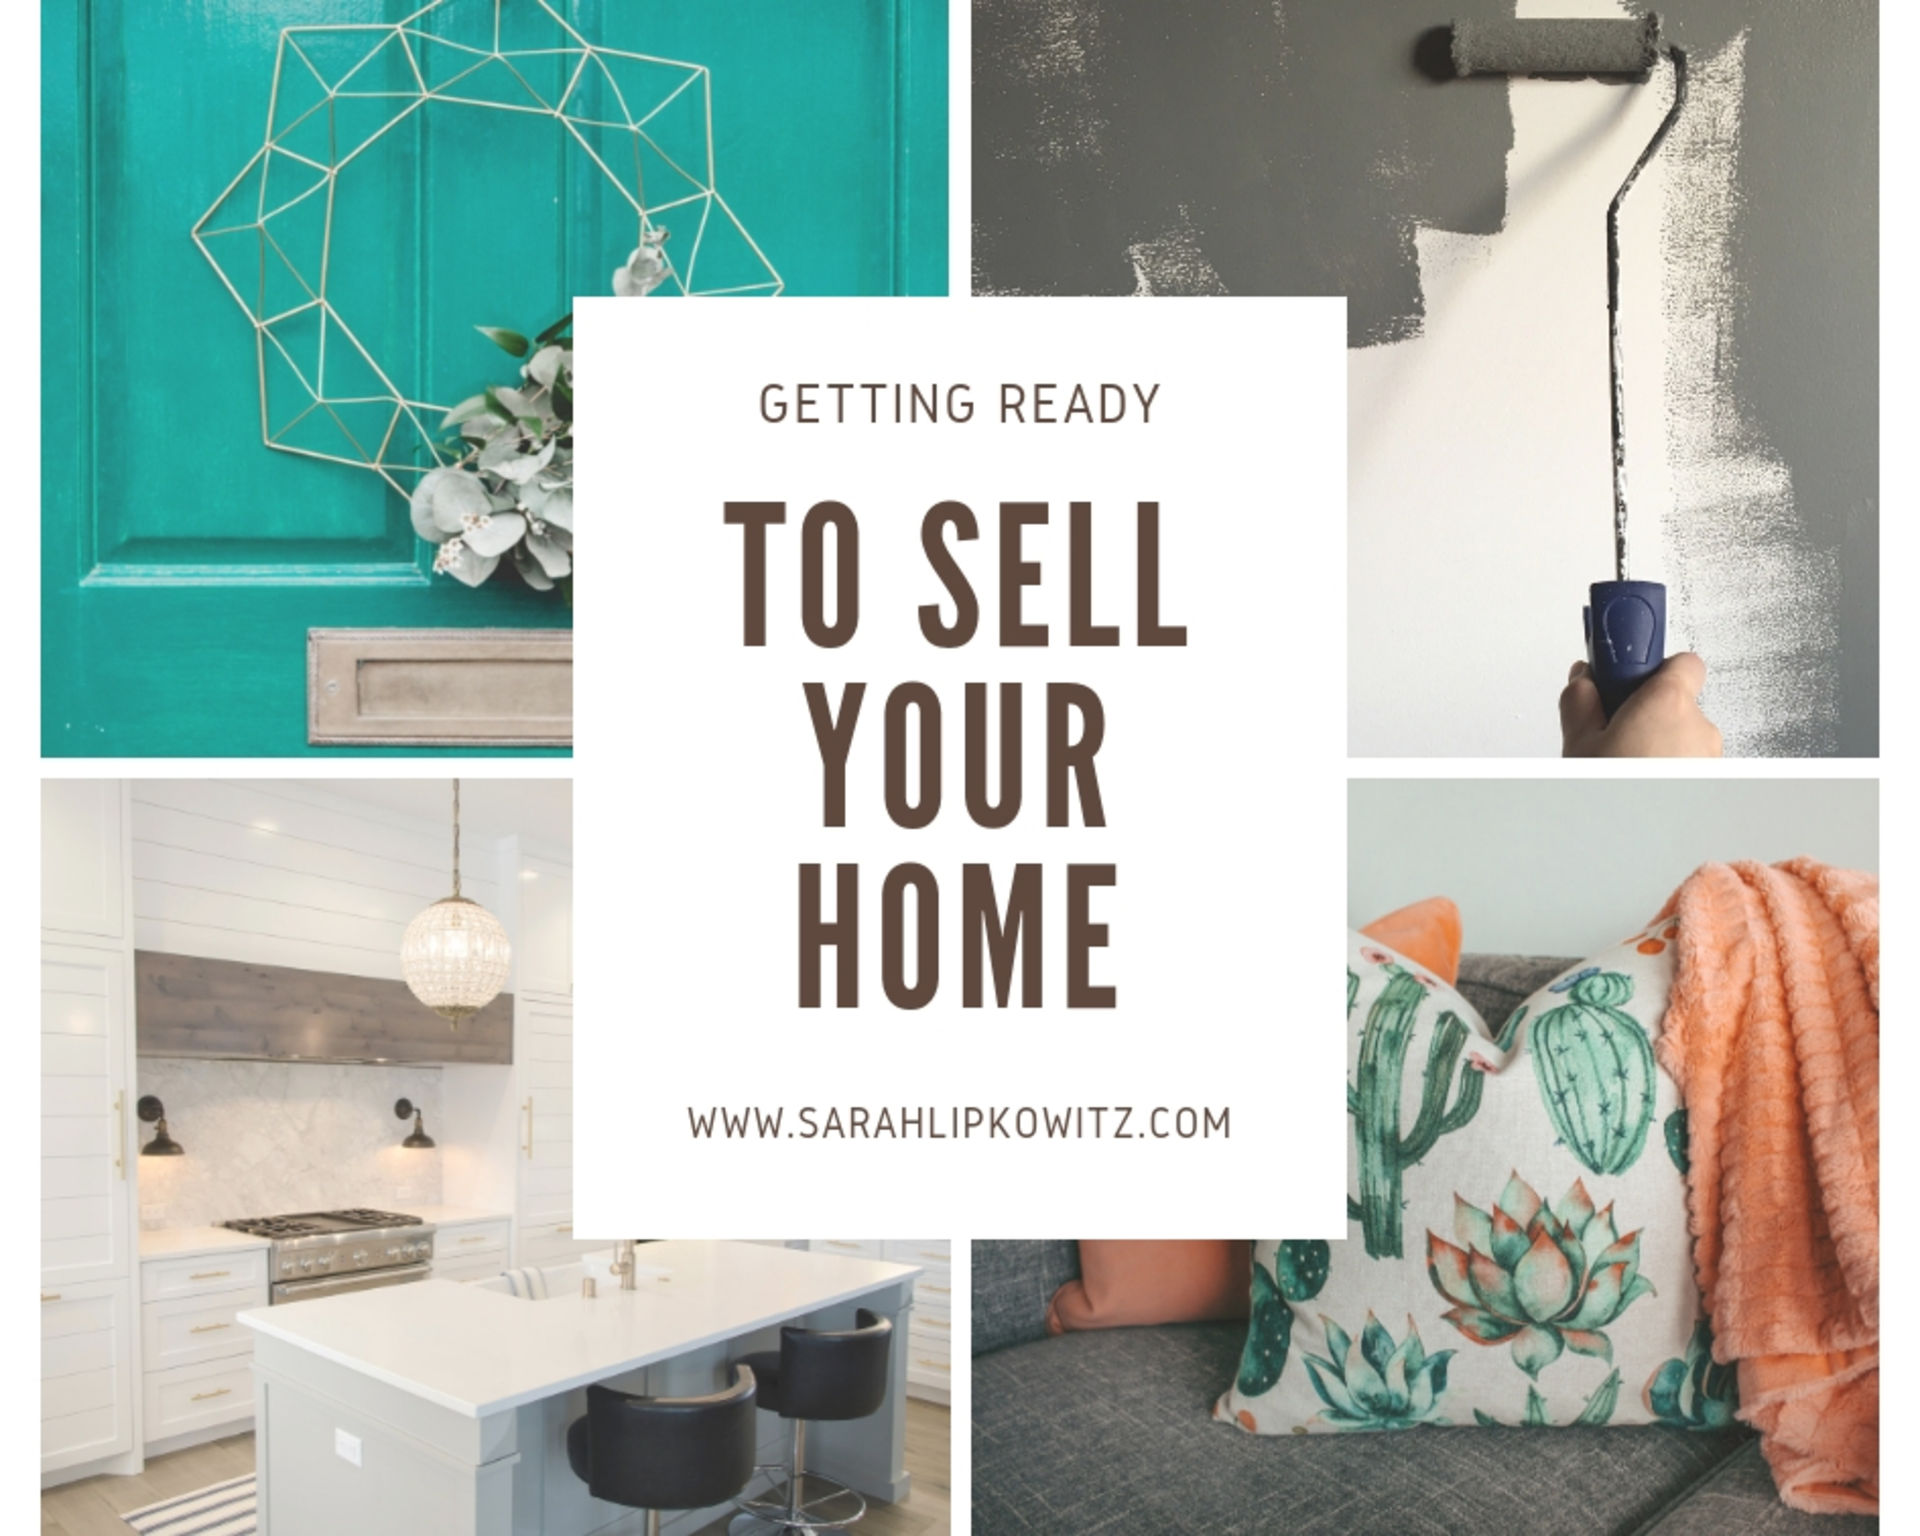 Getting Ready To Sell Your Home